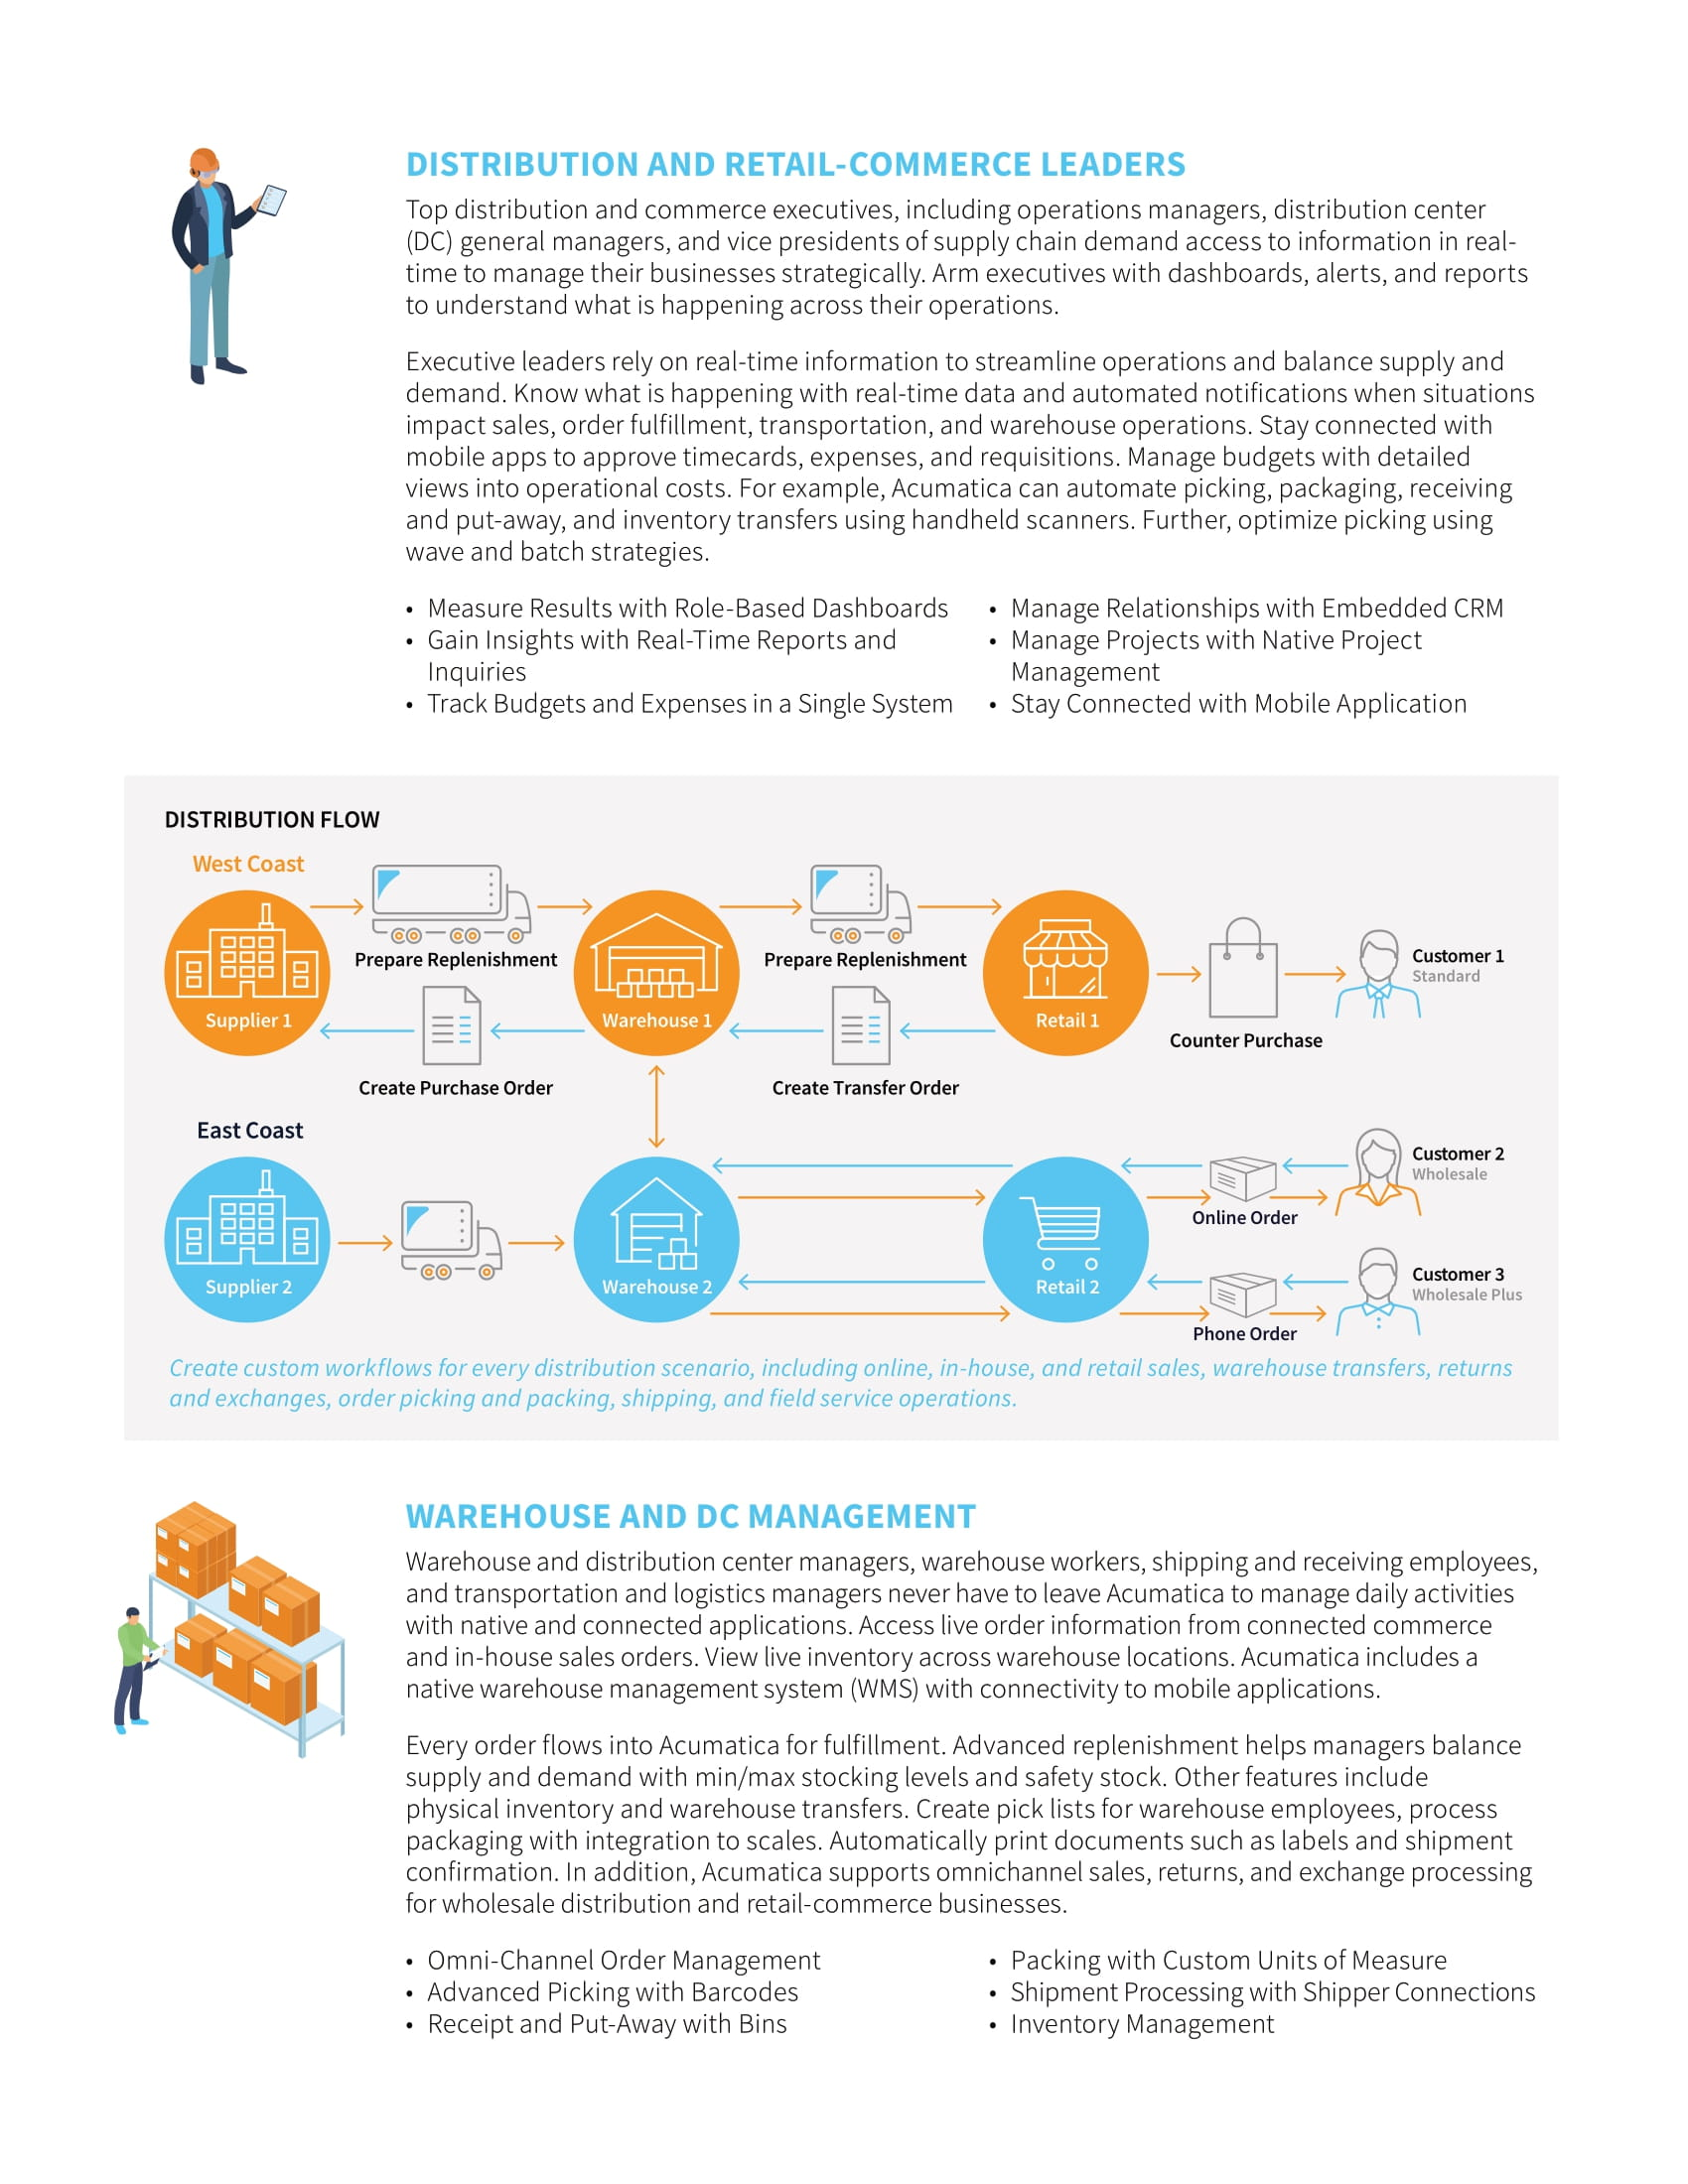 Find the Best ERP System for Distribution and Retail-Commerce Organizations, page 2